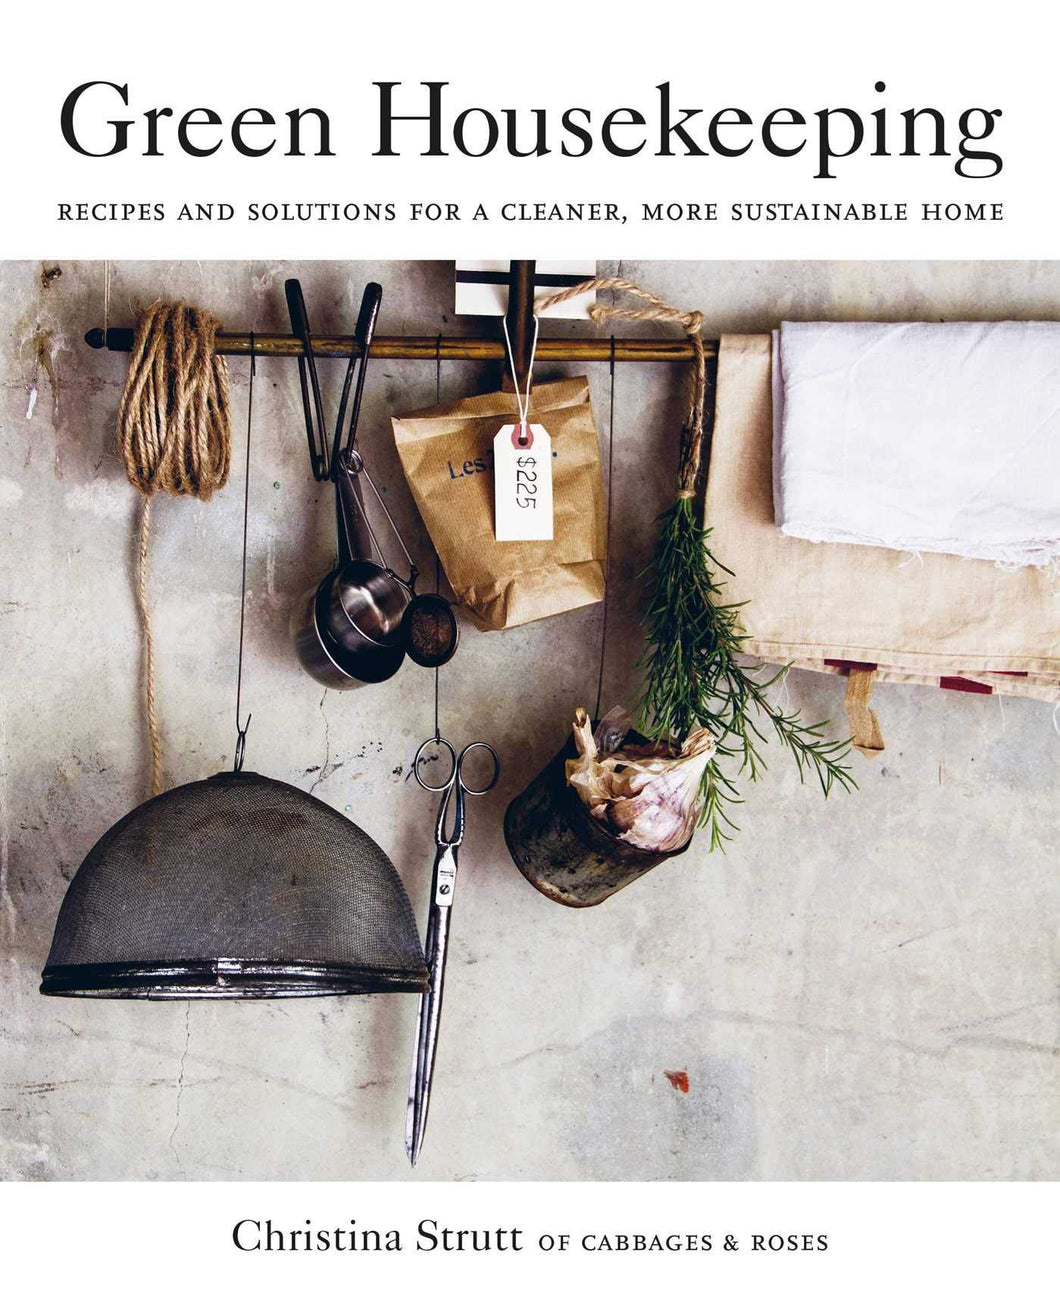 Green Housekeeping by Christina Strutt